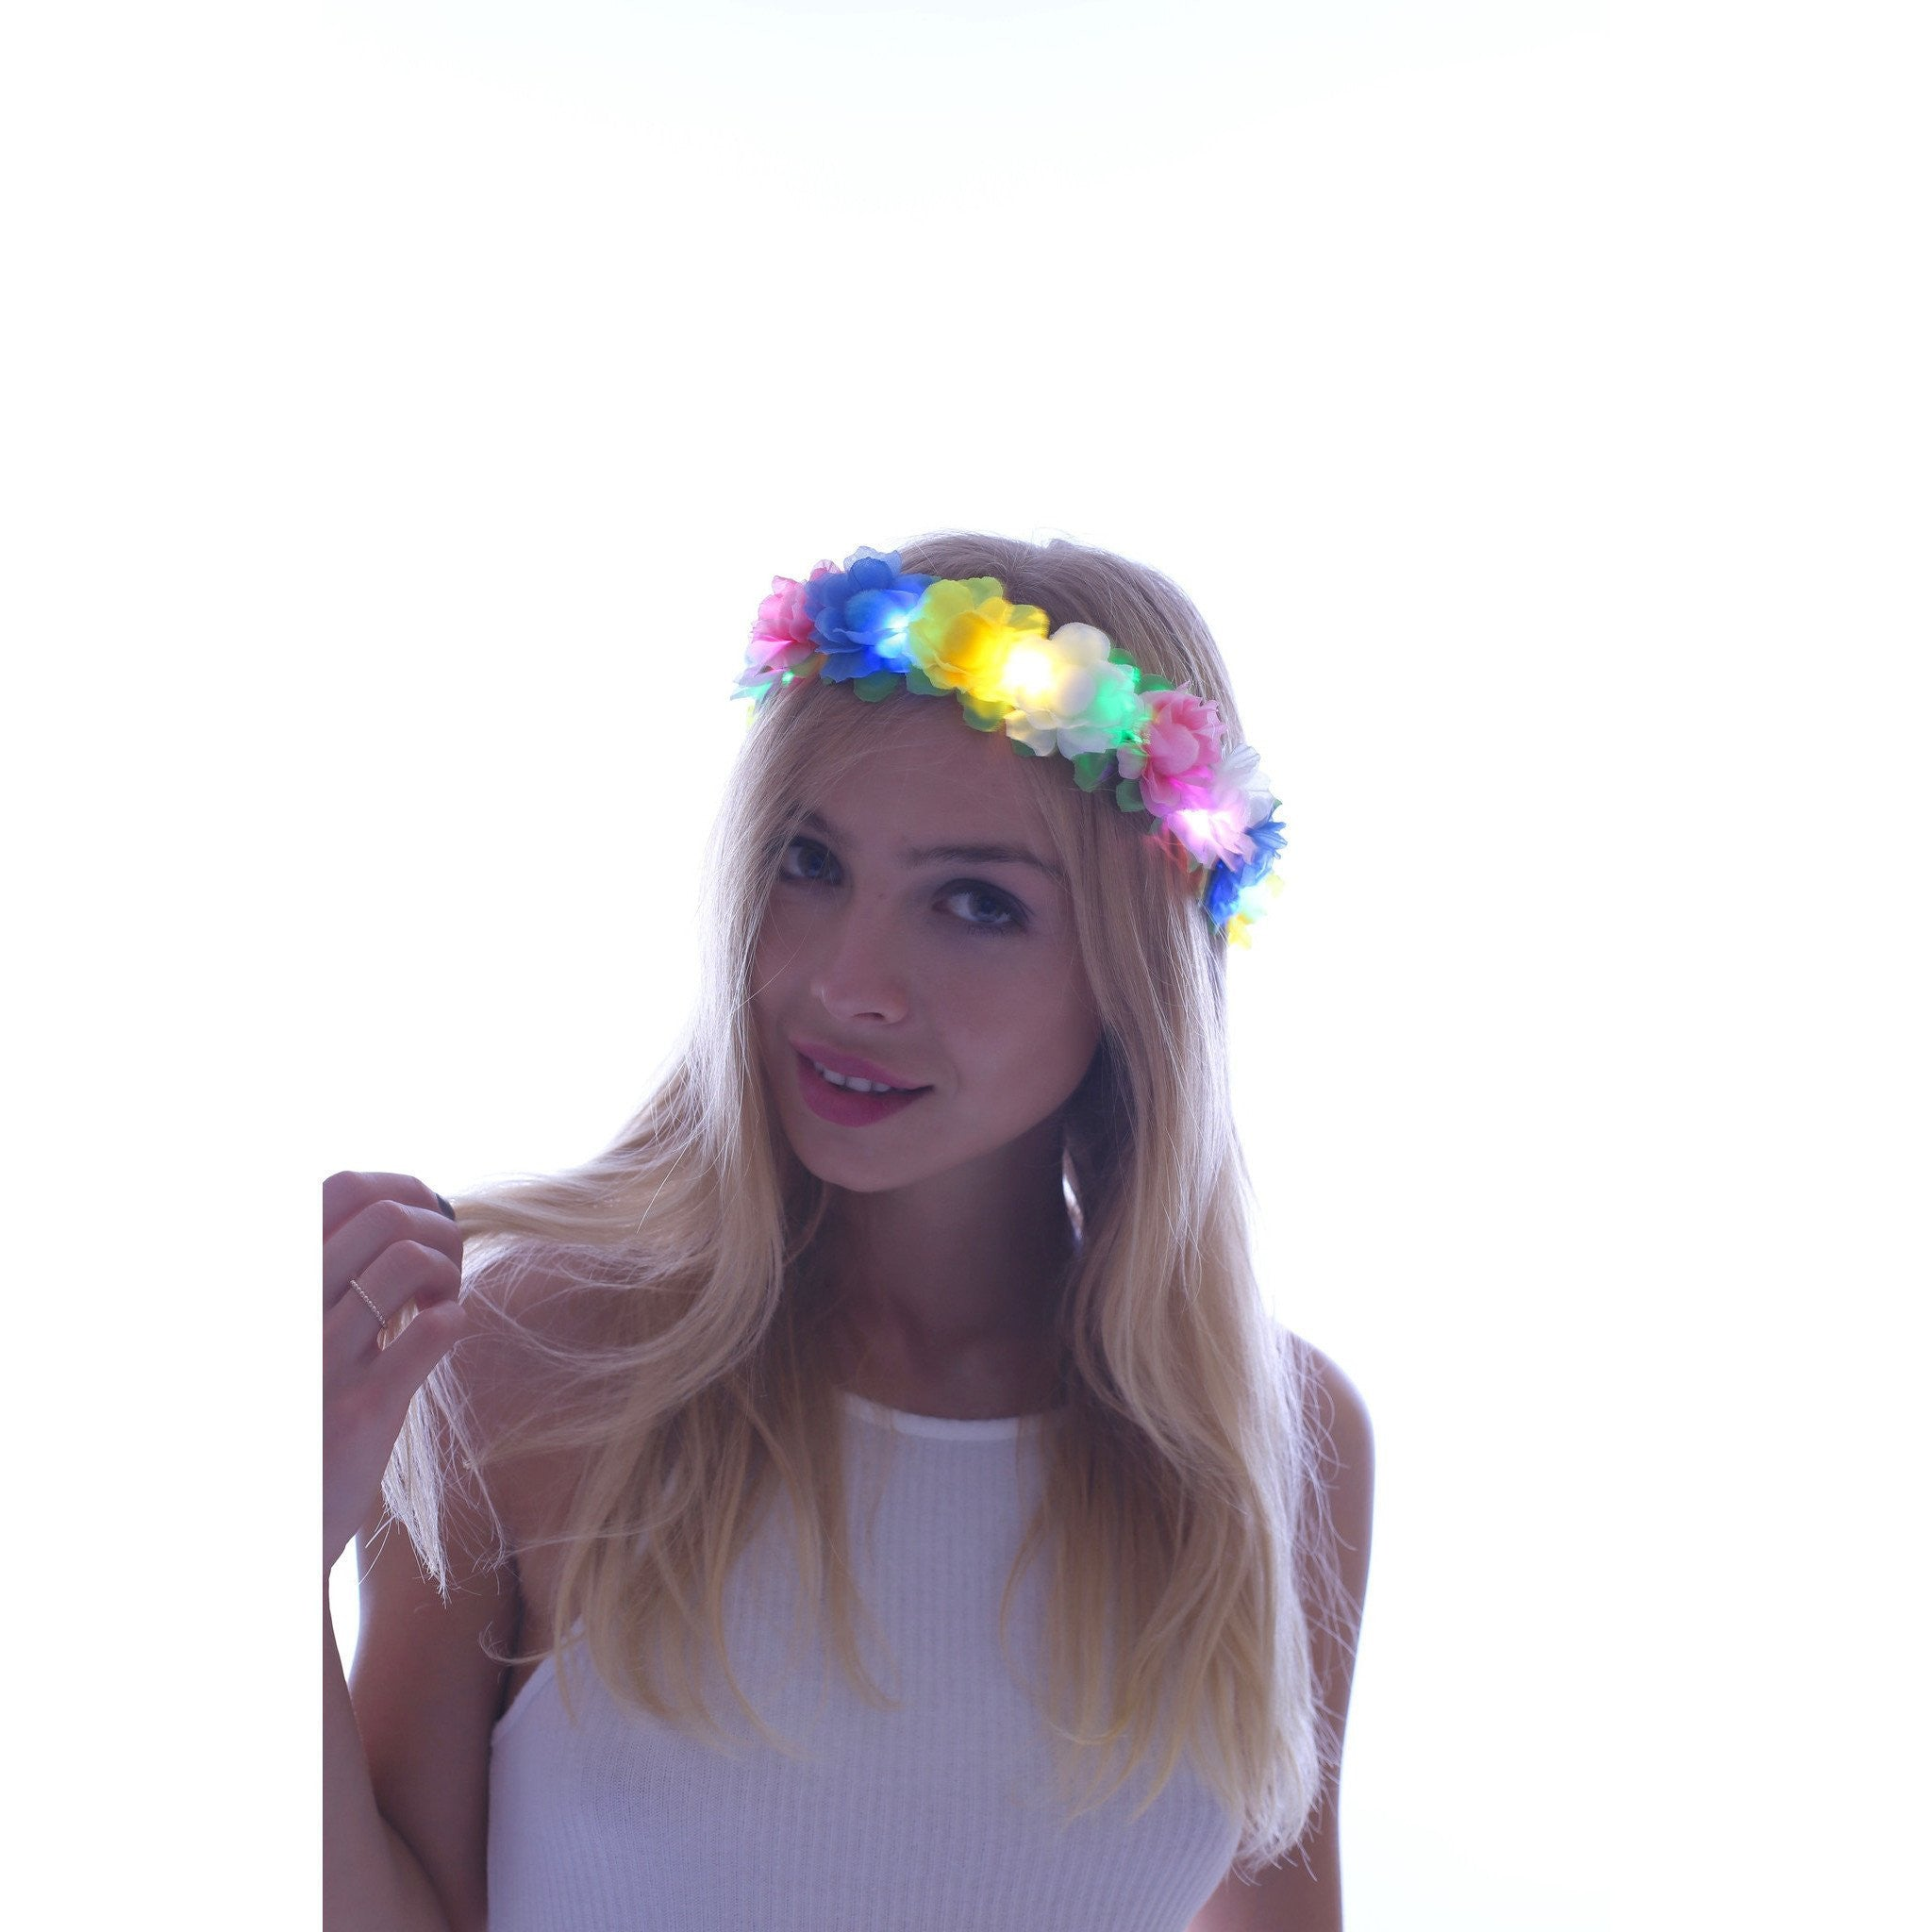 Rainbow-LED Light Up Flower Crown - Rave Rebel